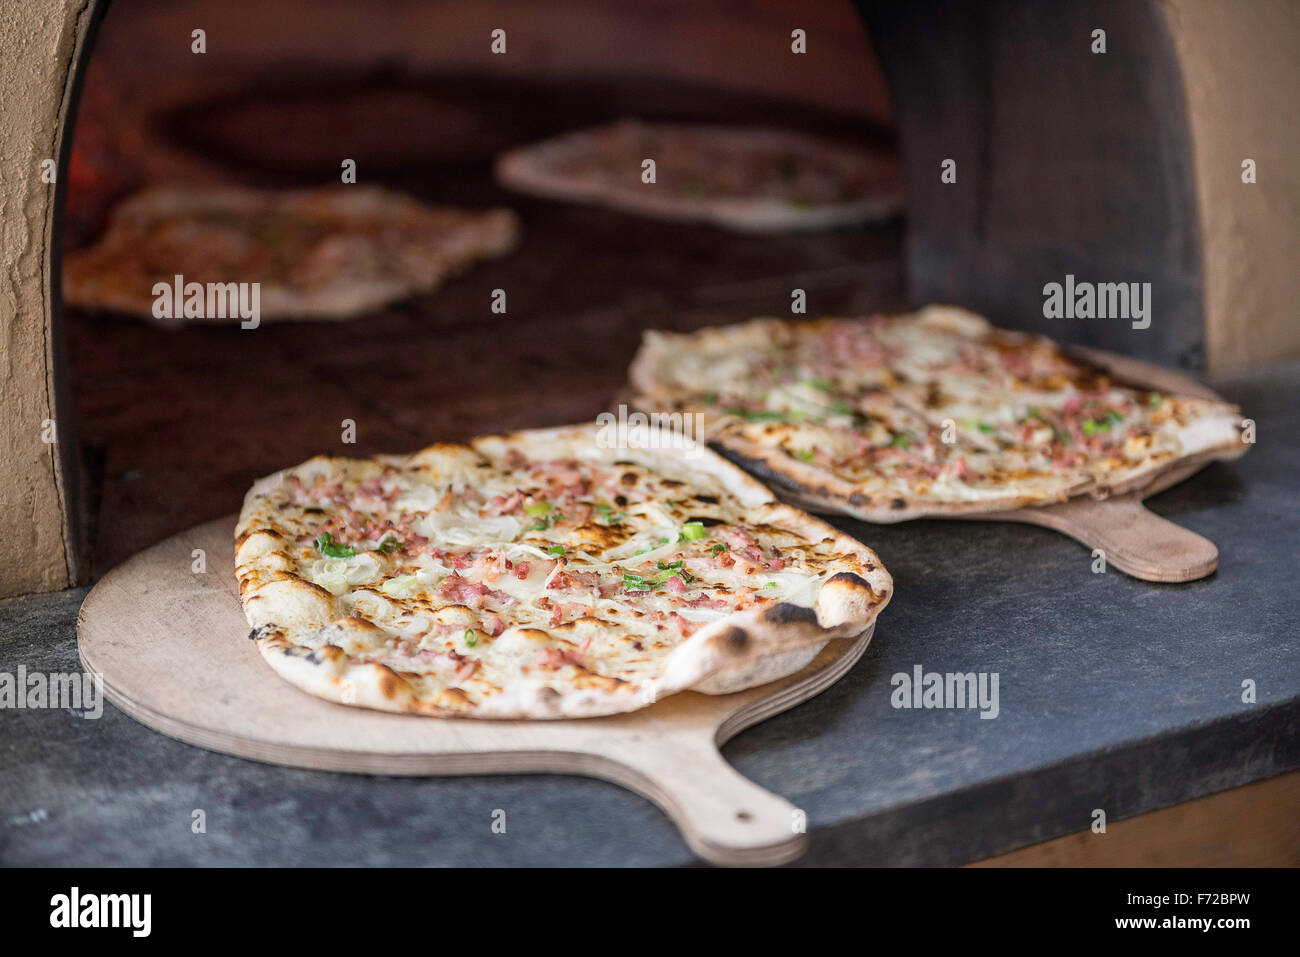 flammkuchen stockfotos flammkuchen bilder alamy. Black Bedroom Furniture Sets. Home Design Ideas